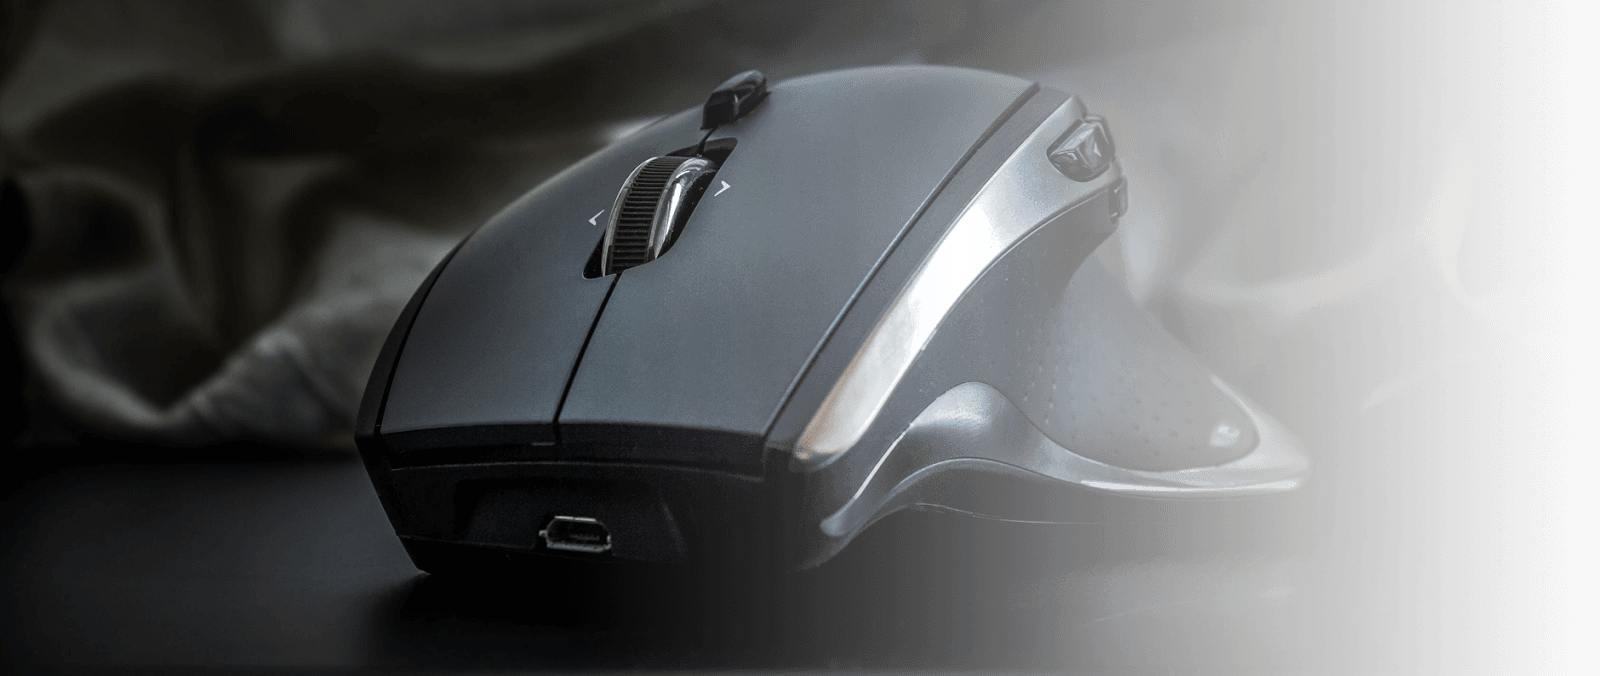 How to change mouse DPI on Windows